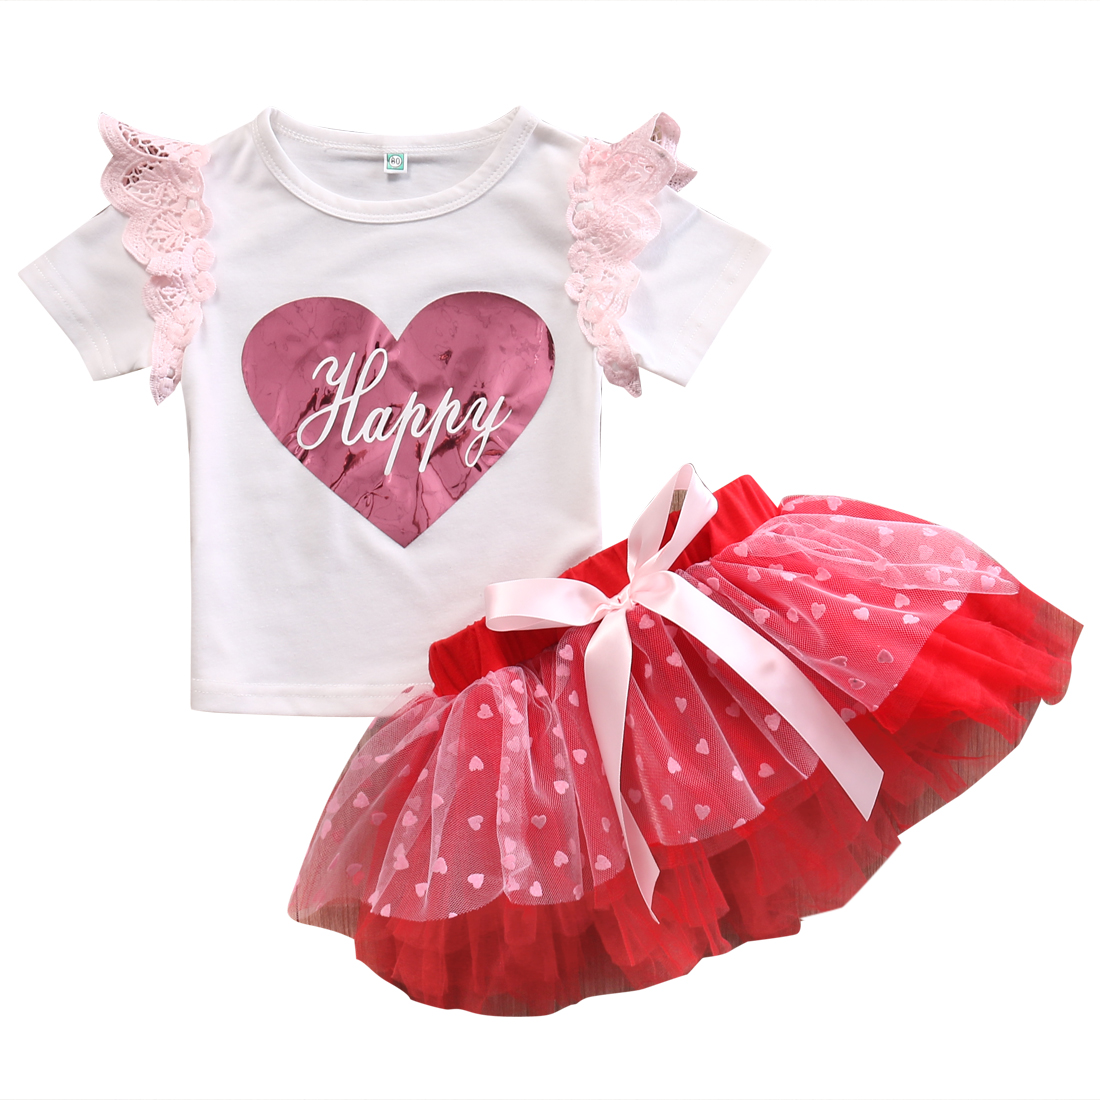 2PCS Kids Baby Girls Summer Outfits Clothes Lace Sleeve T shirt Tops Tutu Skirt 2PCS Sets Princess Clothes hp omen 17 17 w205ur [1dm95ea] black 17 3 fhd i7 7700hq 12gb 1tb 256gb ssd gtx1060 6gb w10